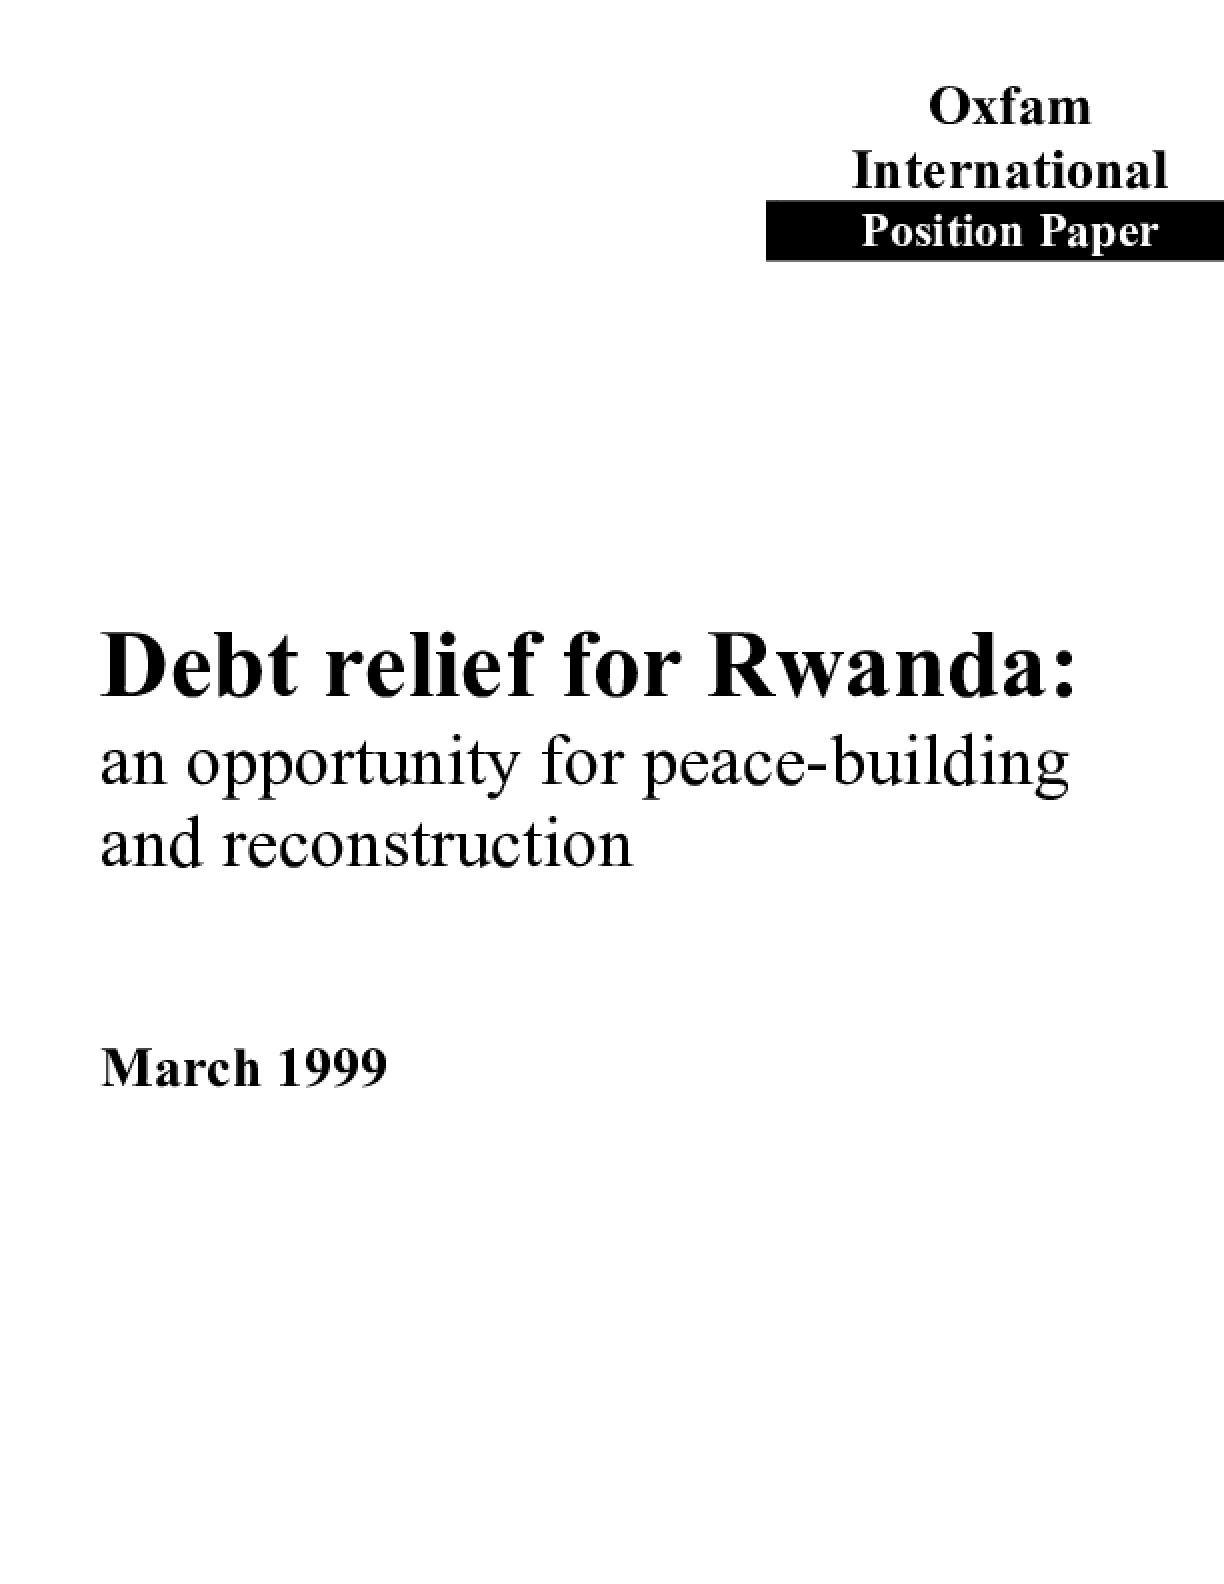 Debt Relief for Rwanda: An opportunity for peacebuilding and reconstruction